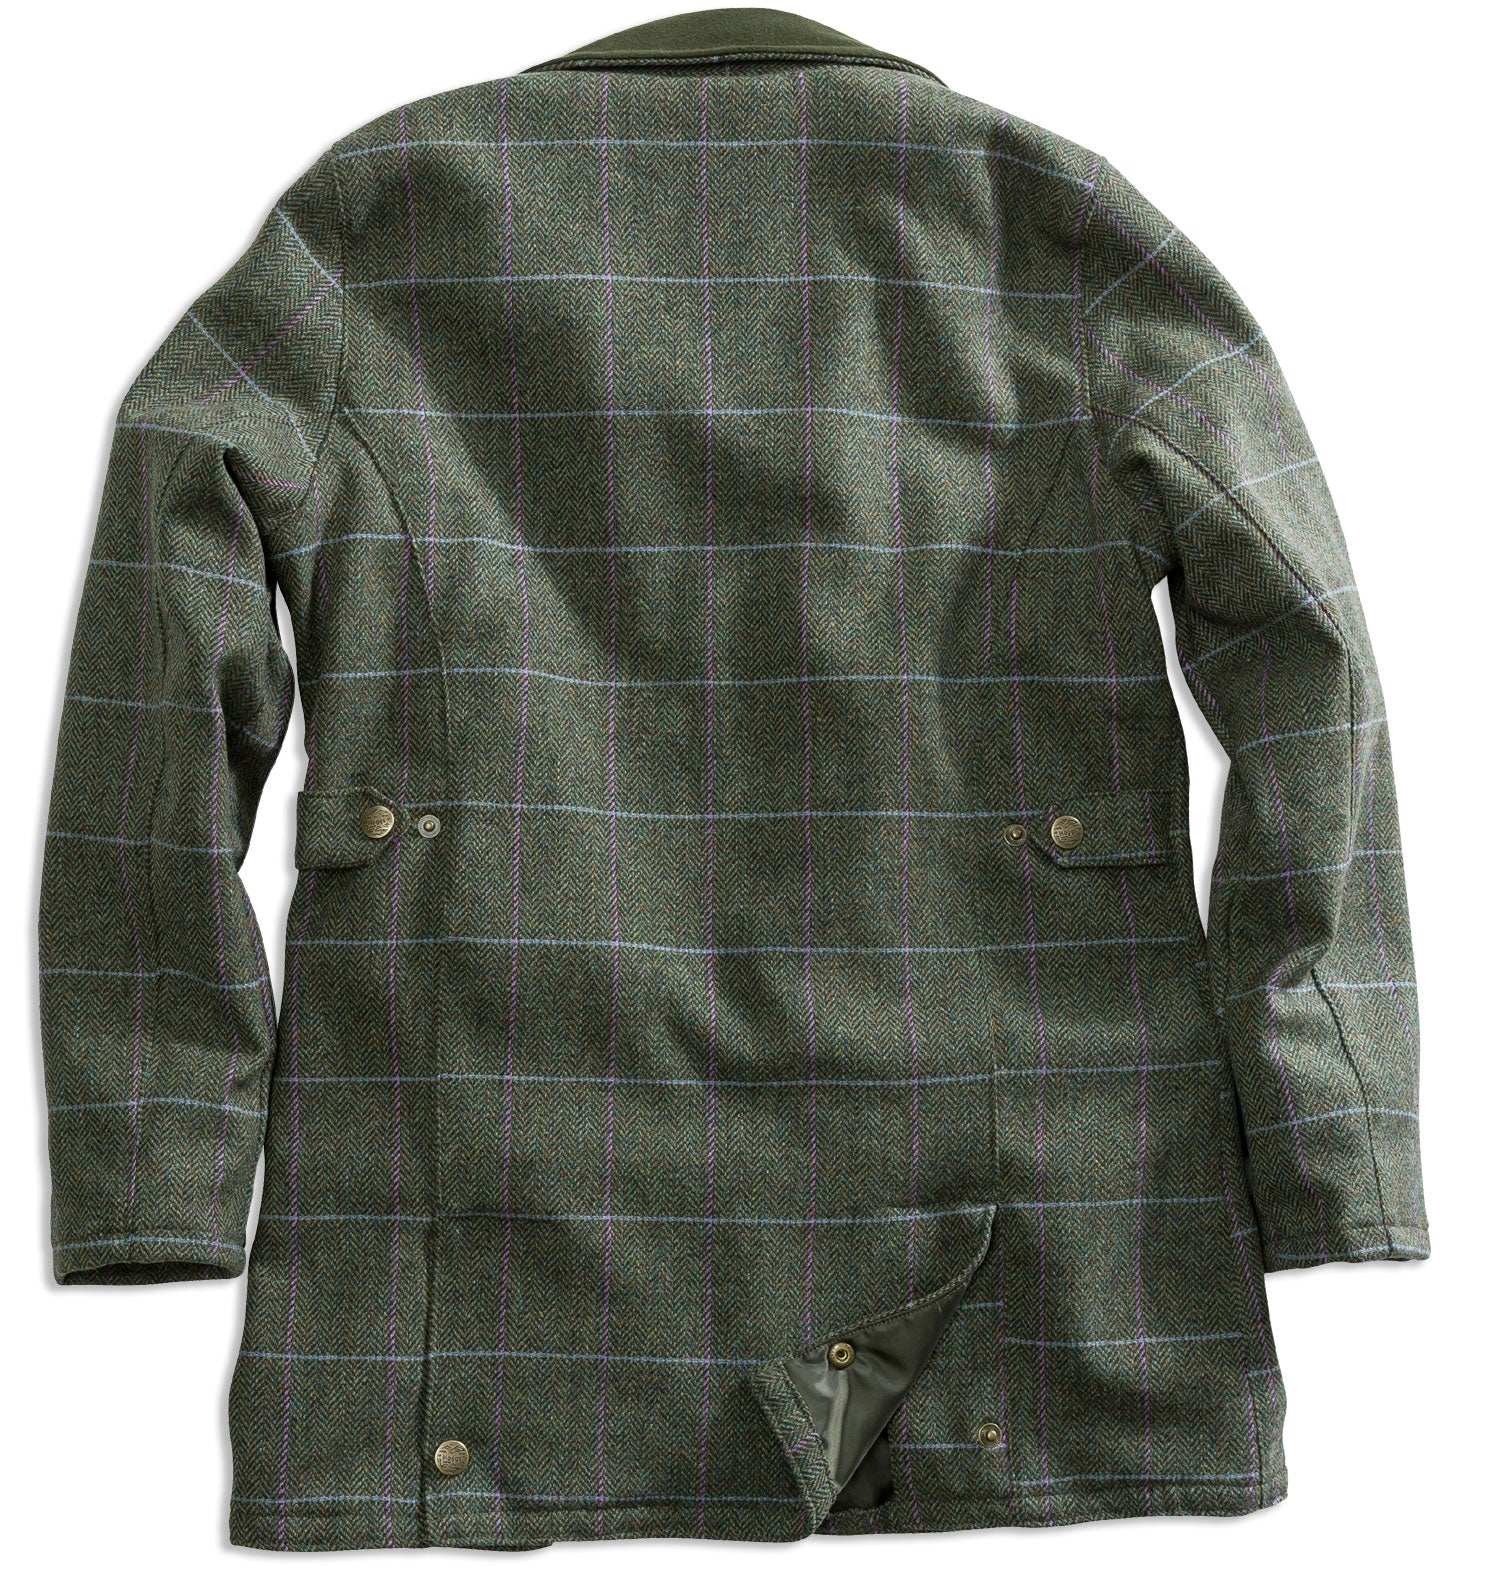 8b289a42df0a1 Hoggs of Fife Albany Ladies Tweed Shooting Jacket – Hollands Country ...